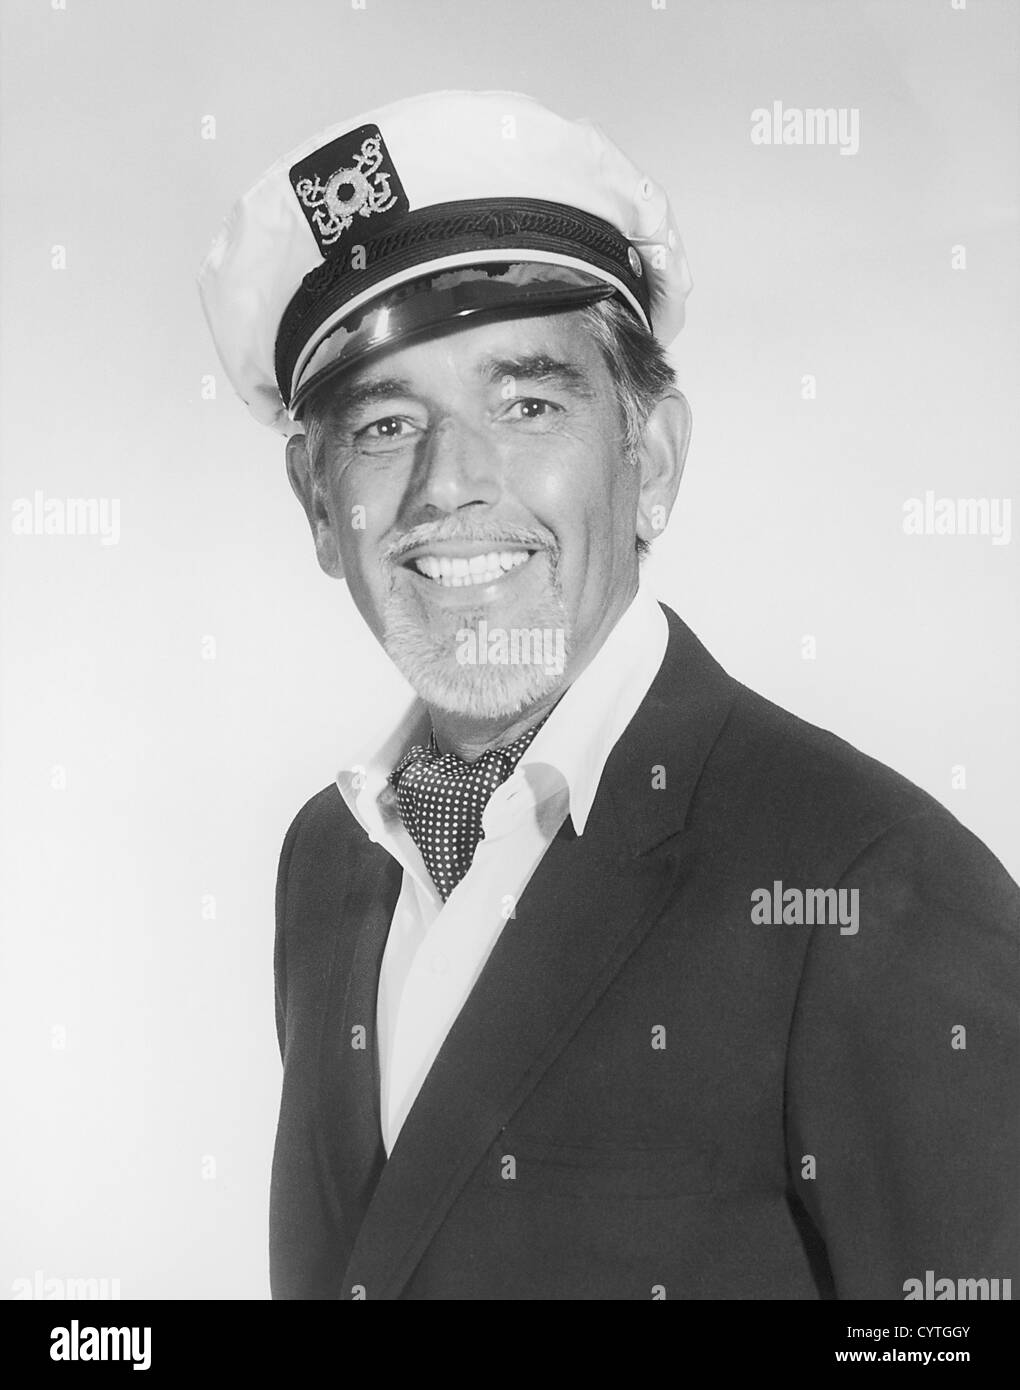 Boat Captain Black and White Stock Photos   Images - Alamy 419829add218